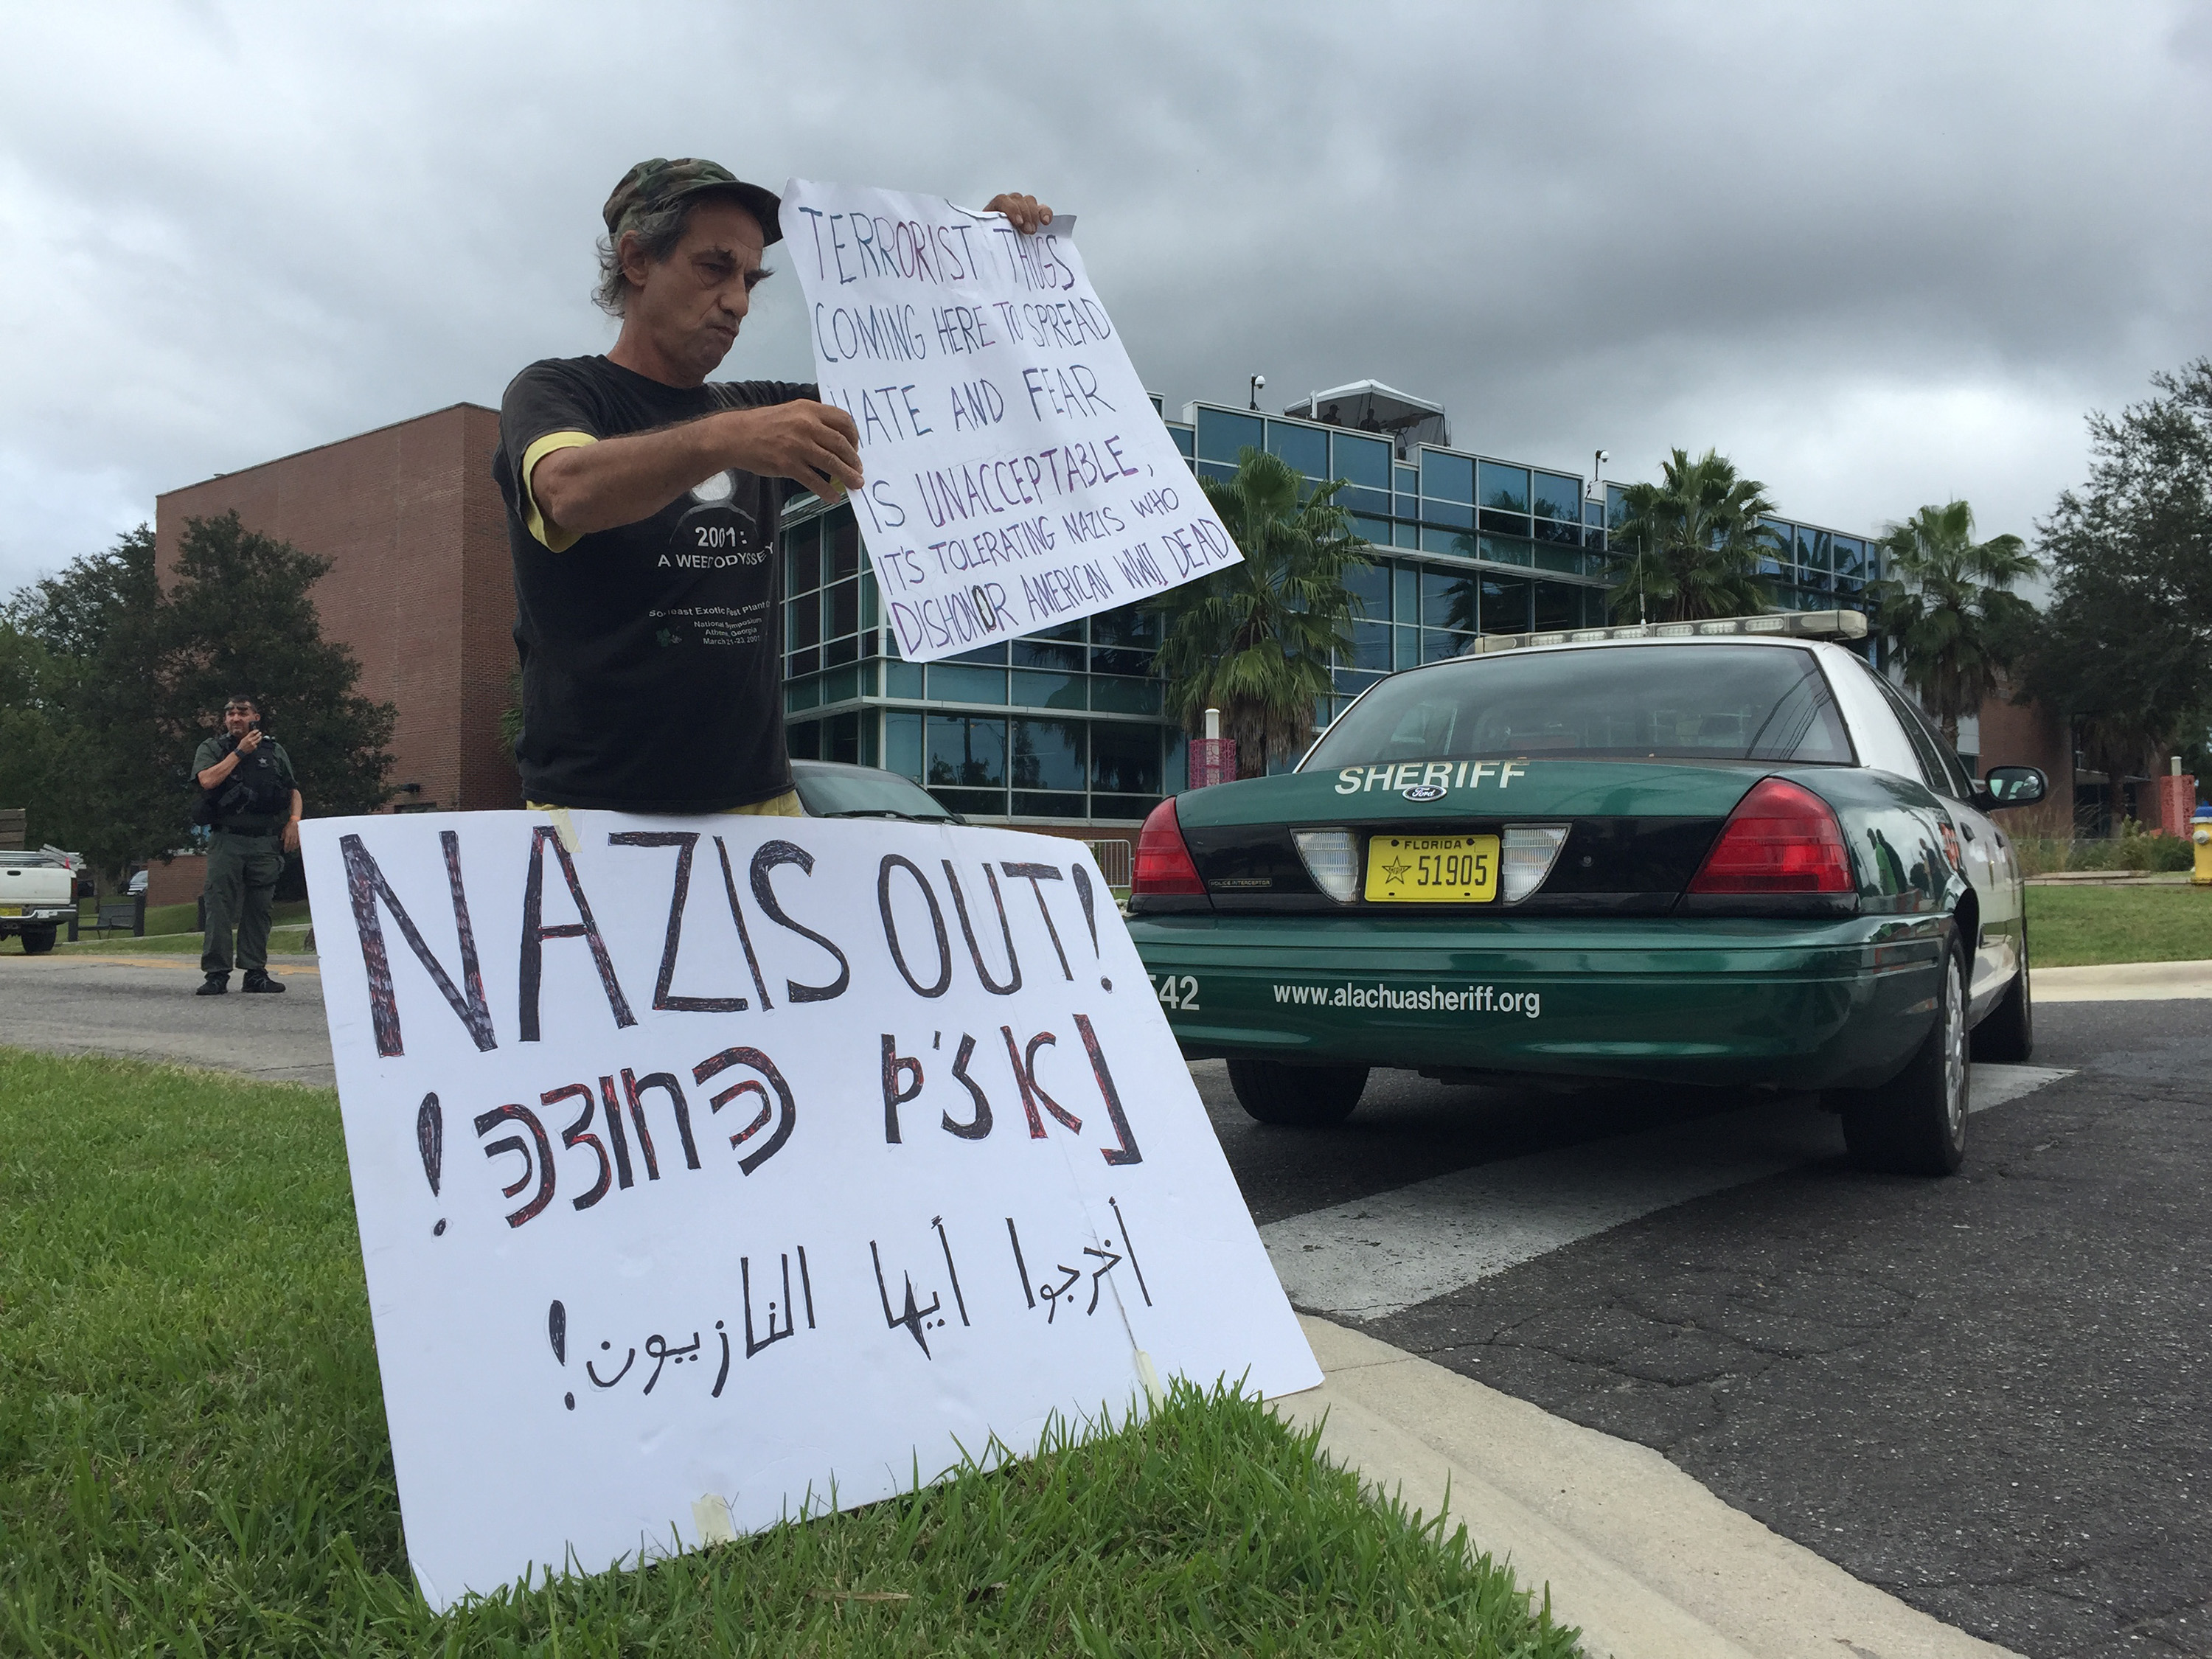 US NEWS CMP FLA WHITENATIONALIST 1 OS - University of Florida and local authorities brace for speech by white nationalist Richard Spencer